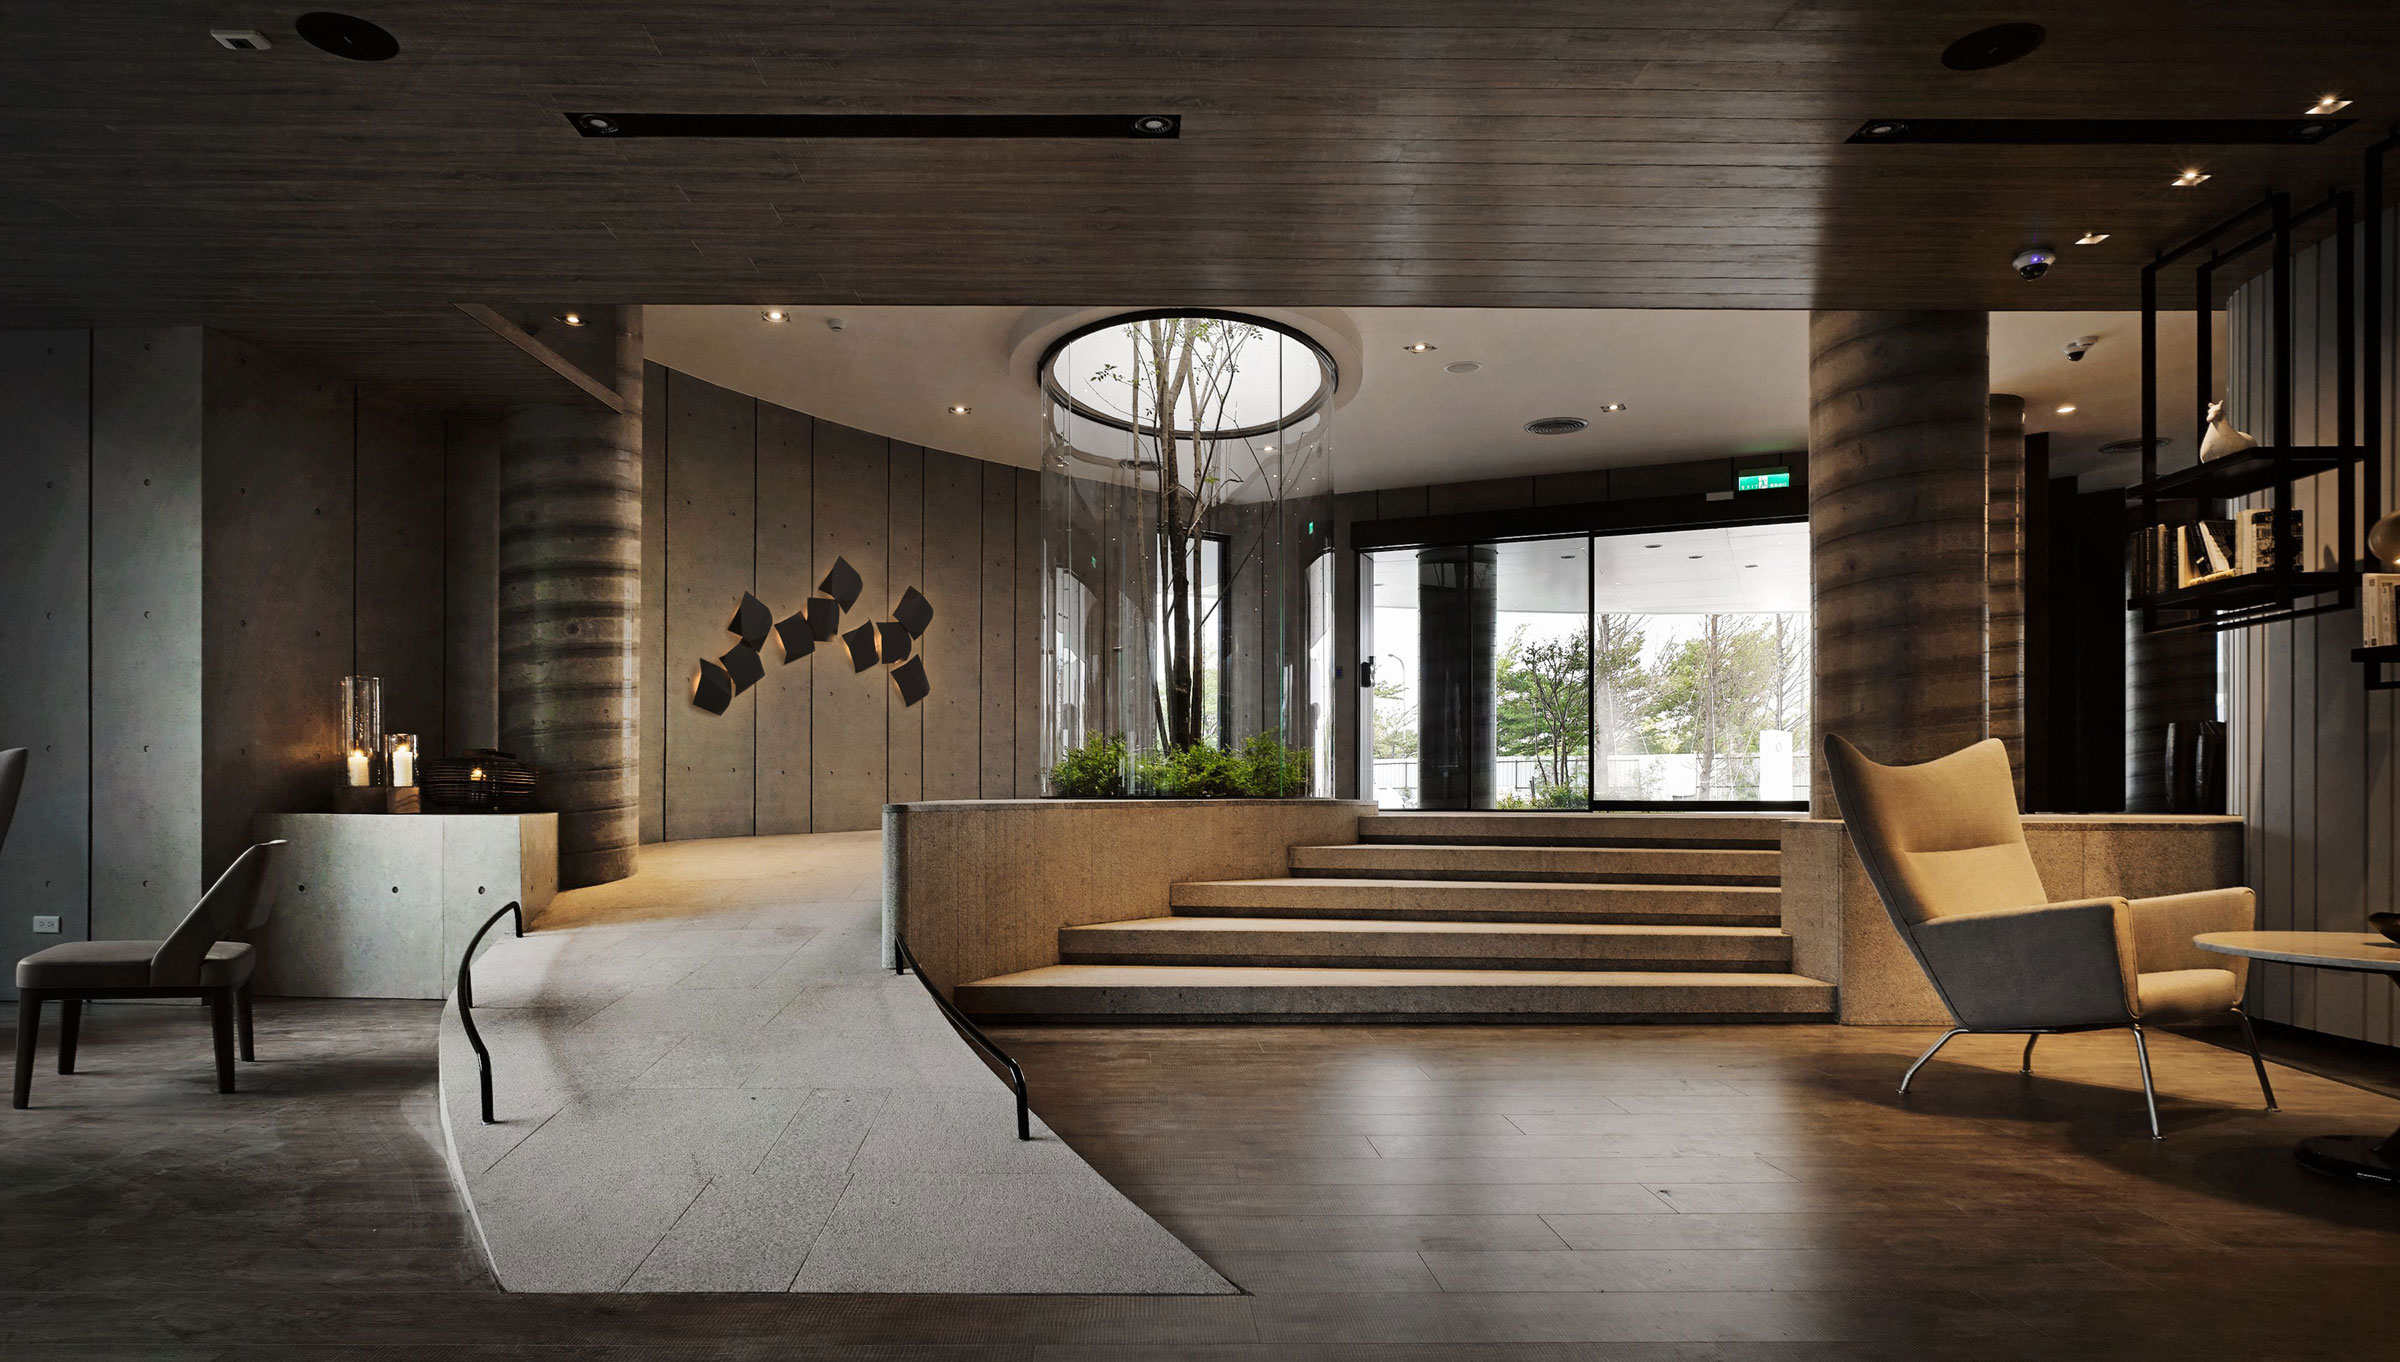 Vibia The edit - Vibia Lighting Lends an Organic Look to a Nature-Inspired Community Space - Origami